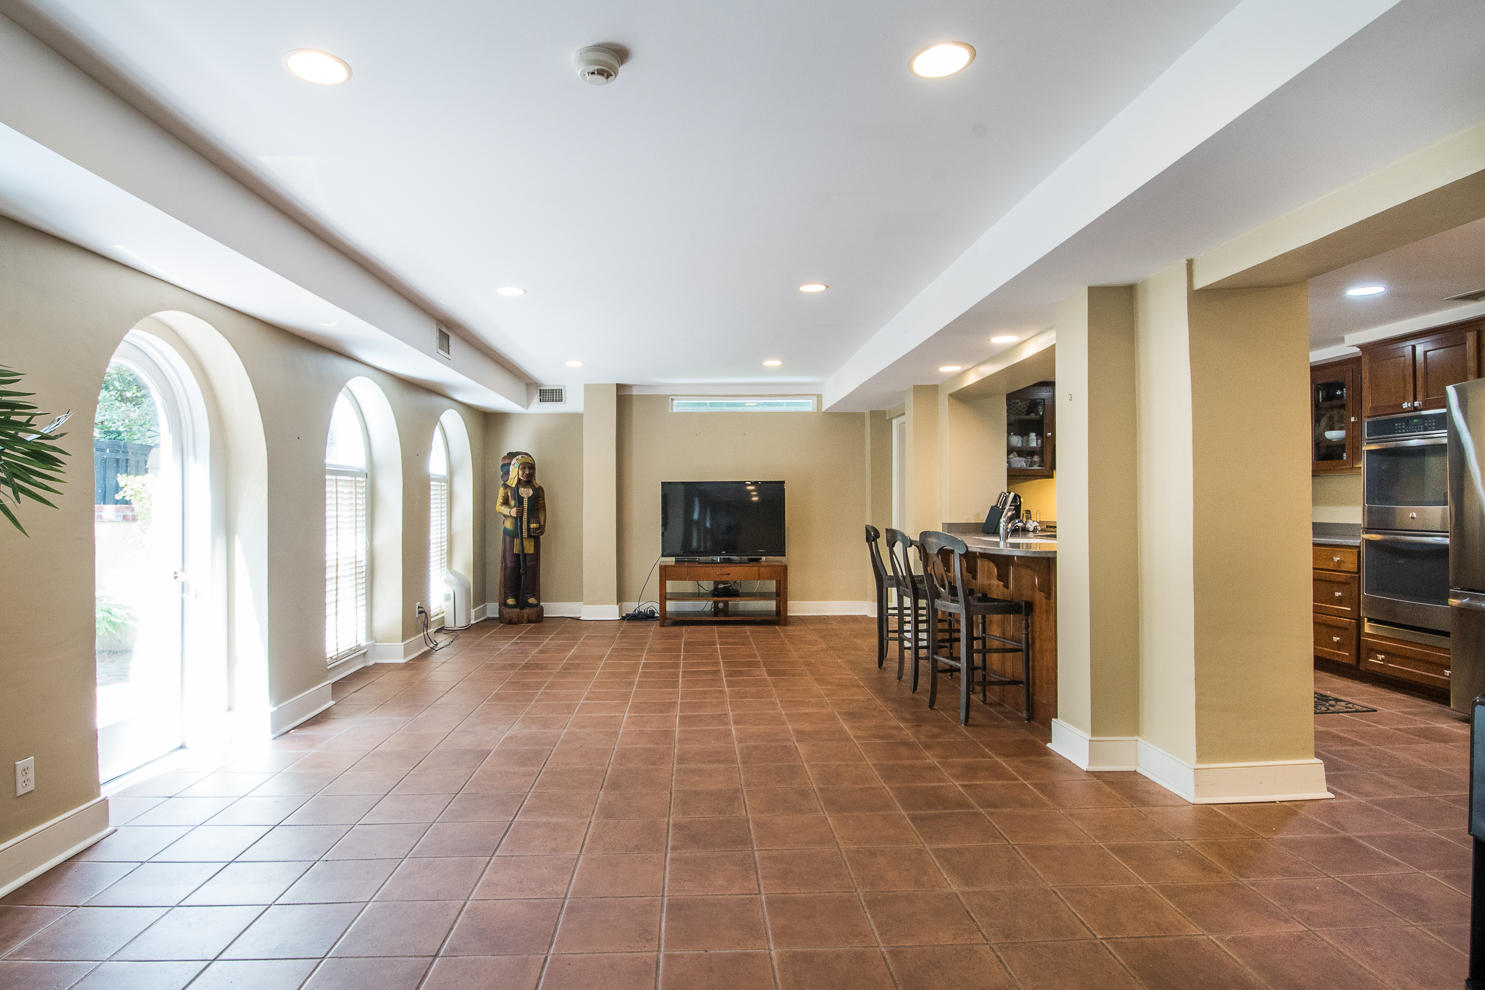 South of Broad Homes For Sale - 1 Prices, Charleston, SC - 47